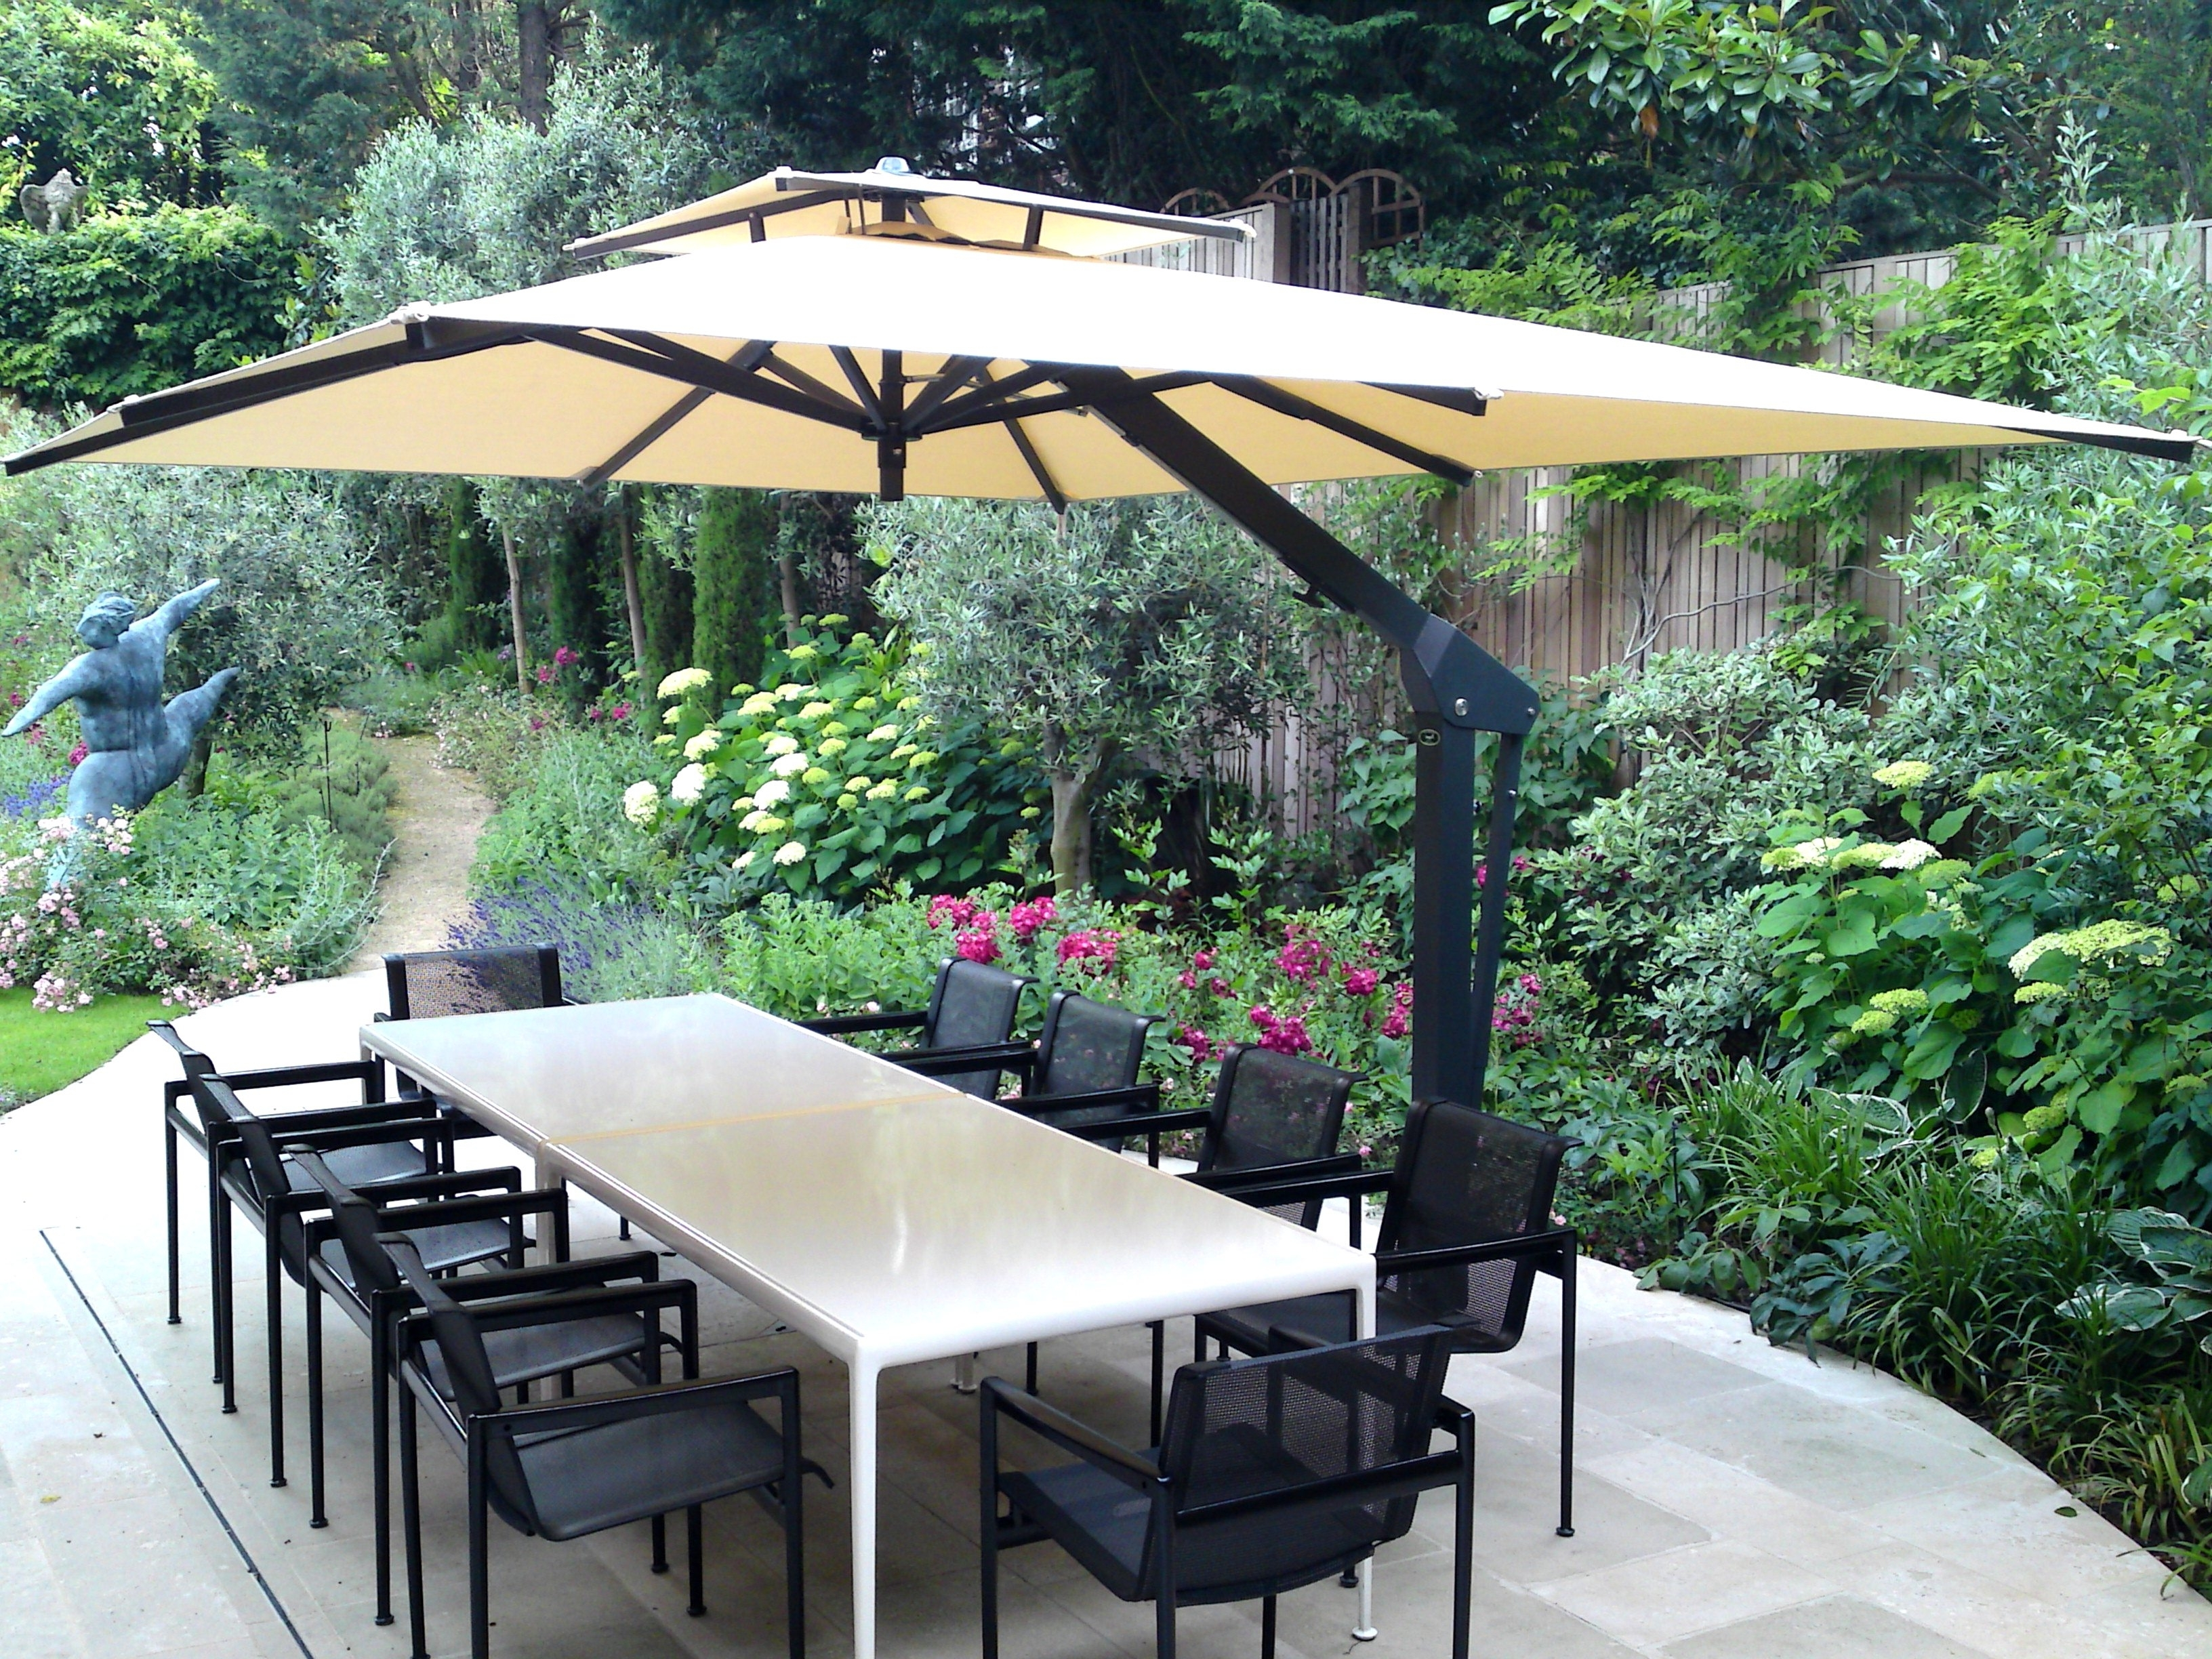 Heavy Duty Patio Umbrellas Throughout Best And Newest Patio Umbrella Decorating Ideas Beautiful Coolest Heavy Duty Patio (Gallery 5 of 20)